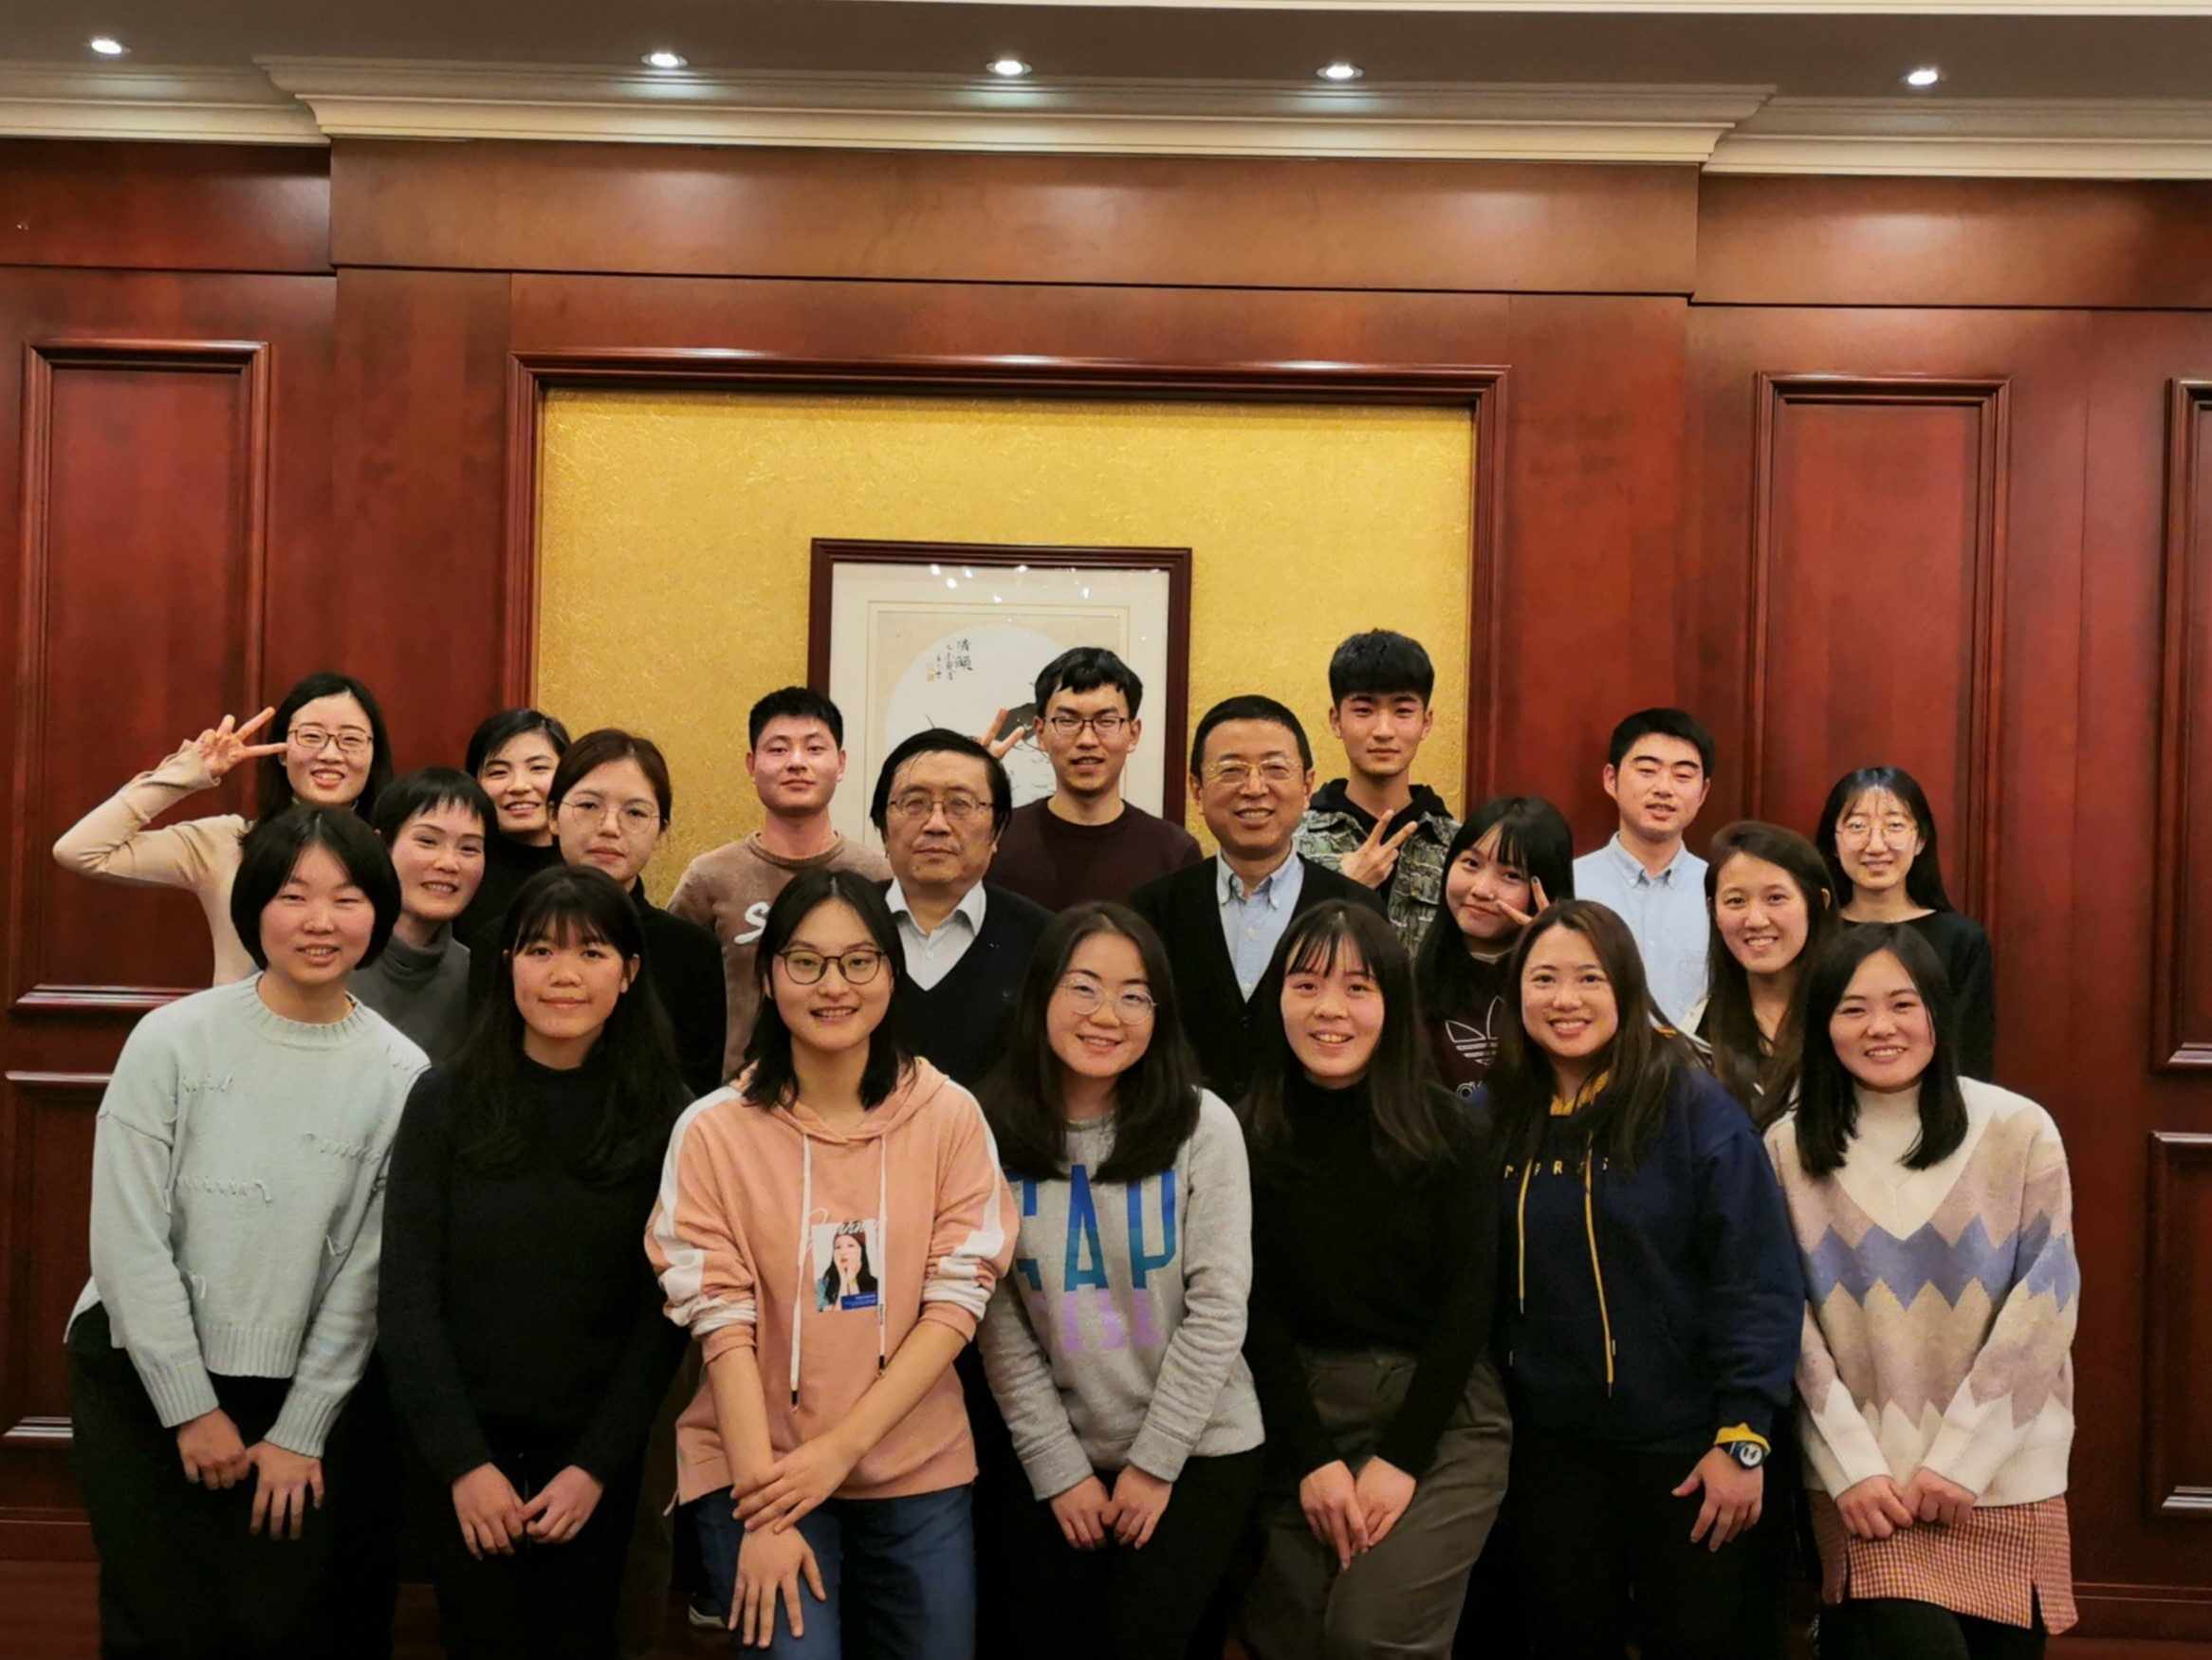 1. Group photo with Prof. Gao Shandong Study Tour 2019 cropped